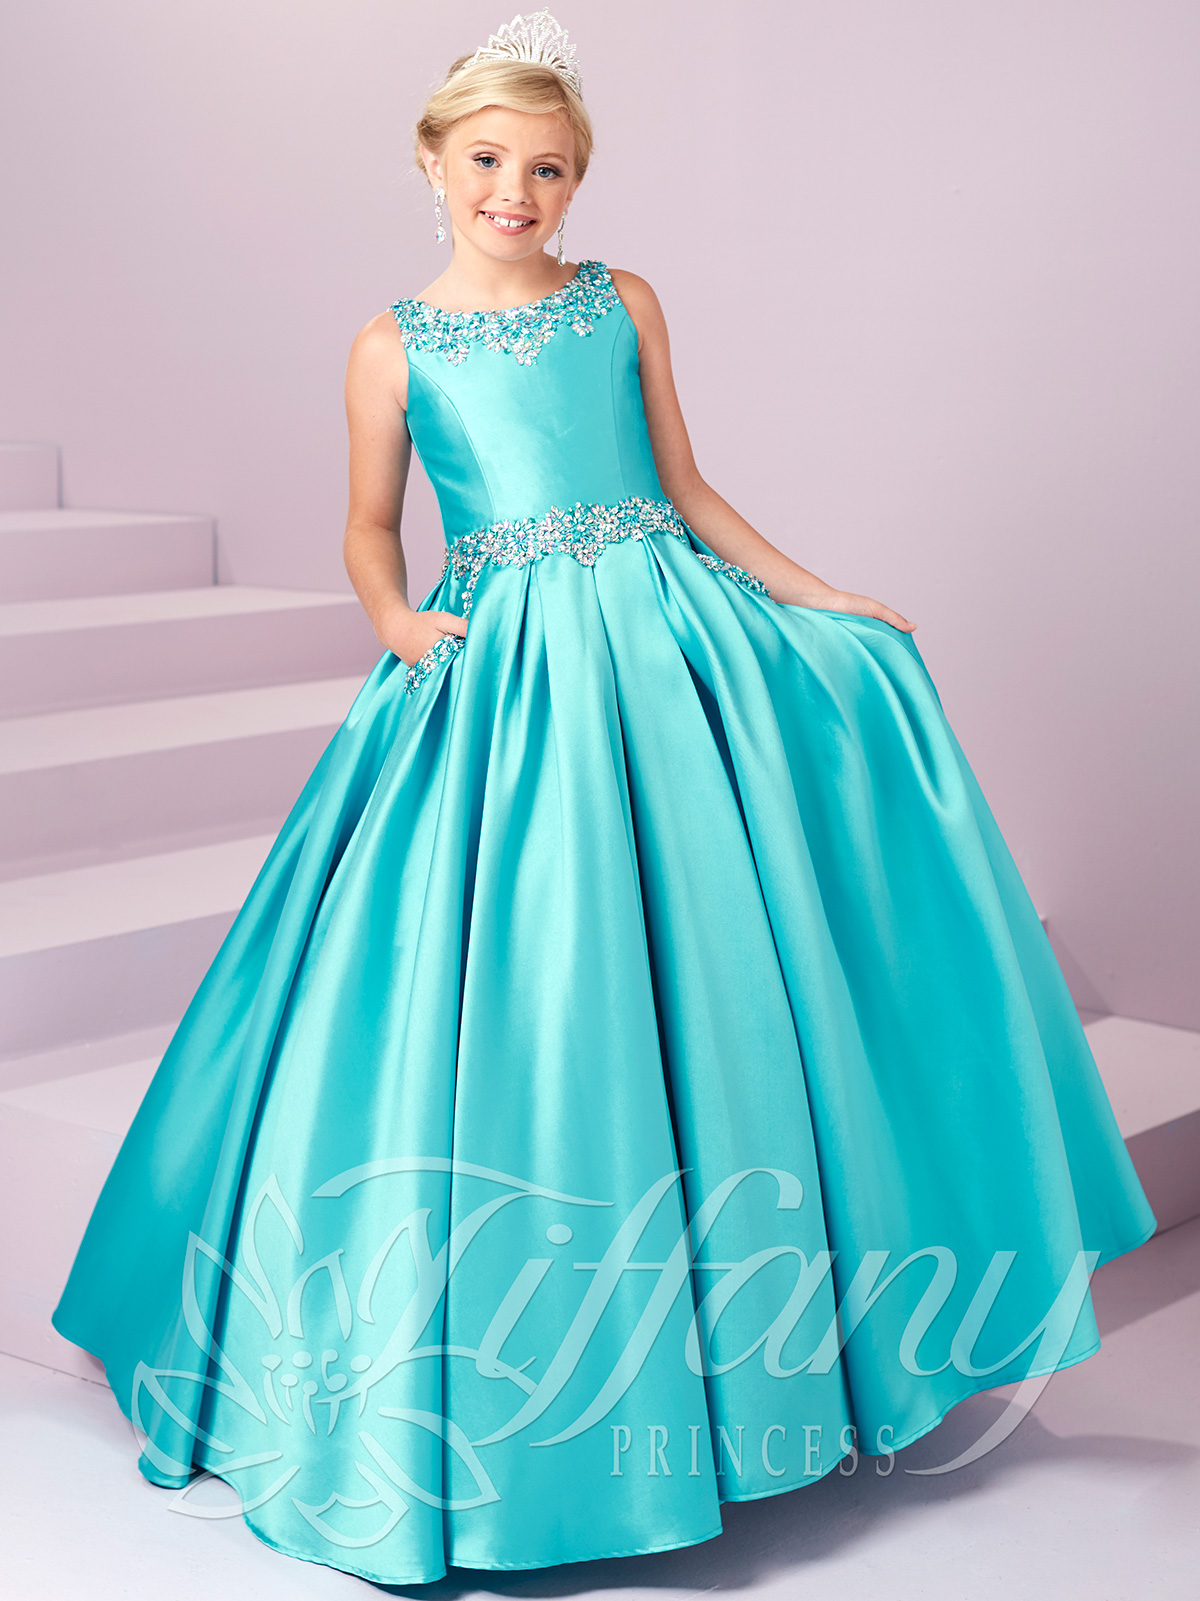 Tiffany Princess 13485 Beaded Pockets Pageant Gown|PageantDesigns.com